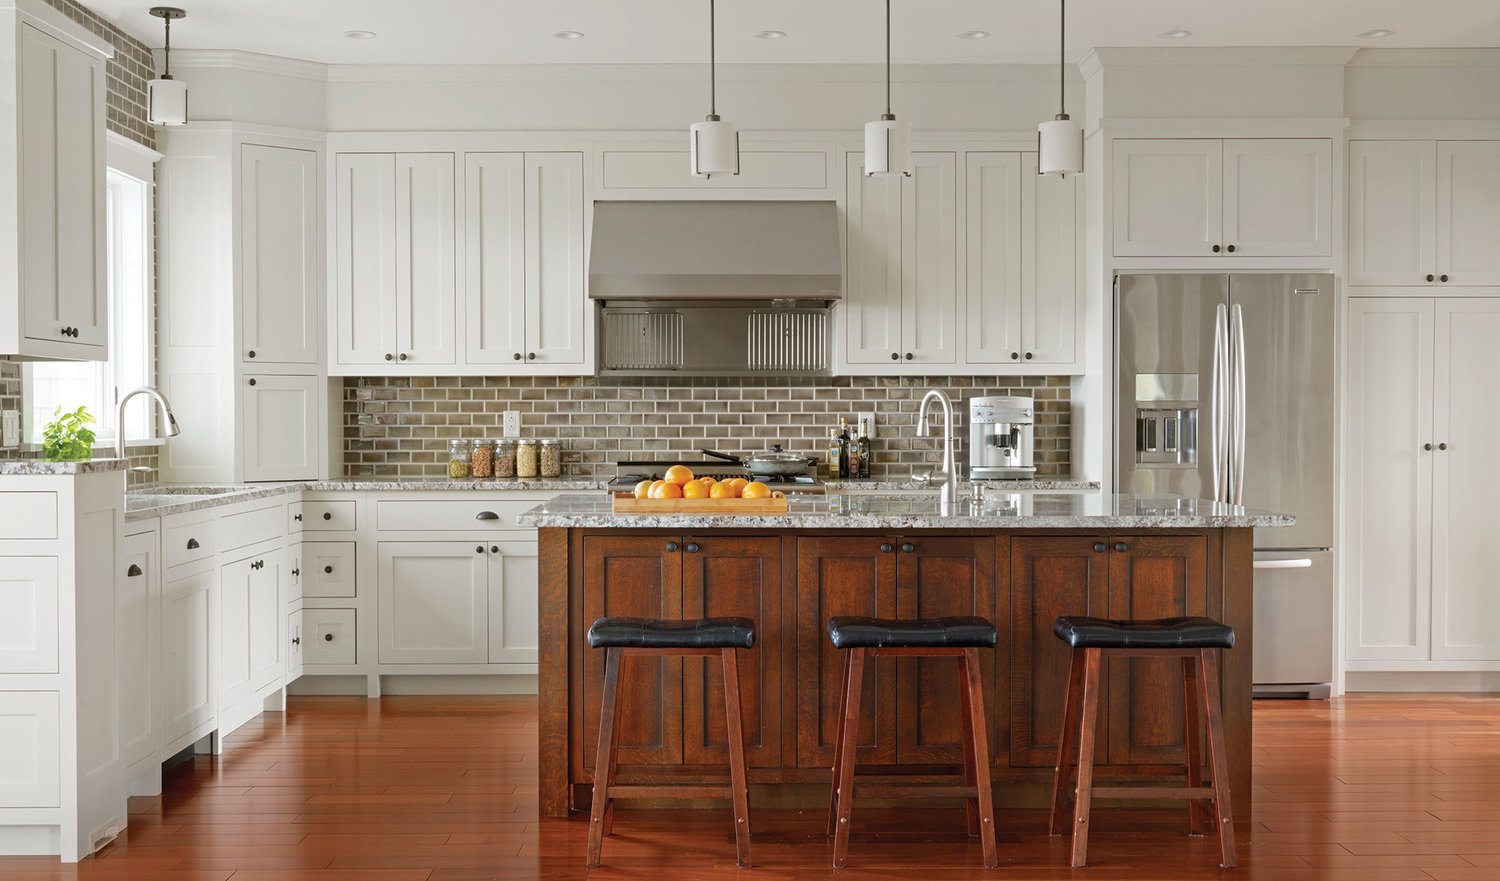 home cabinet cabinets love designs shutterstock cabinetry custom ideas kitchen